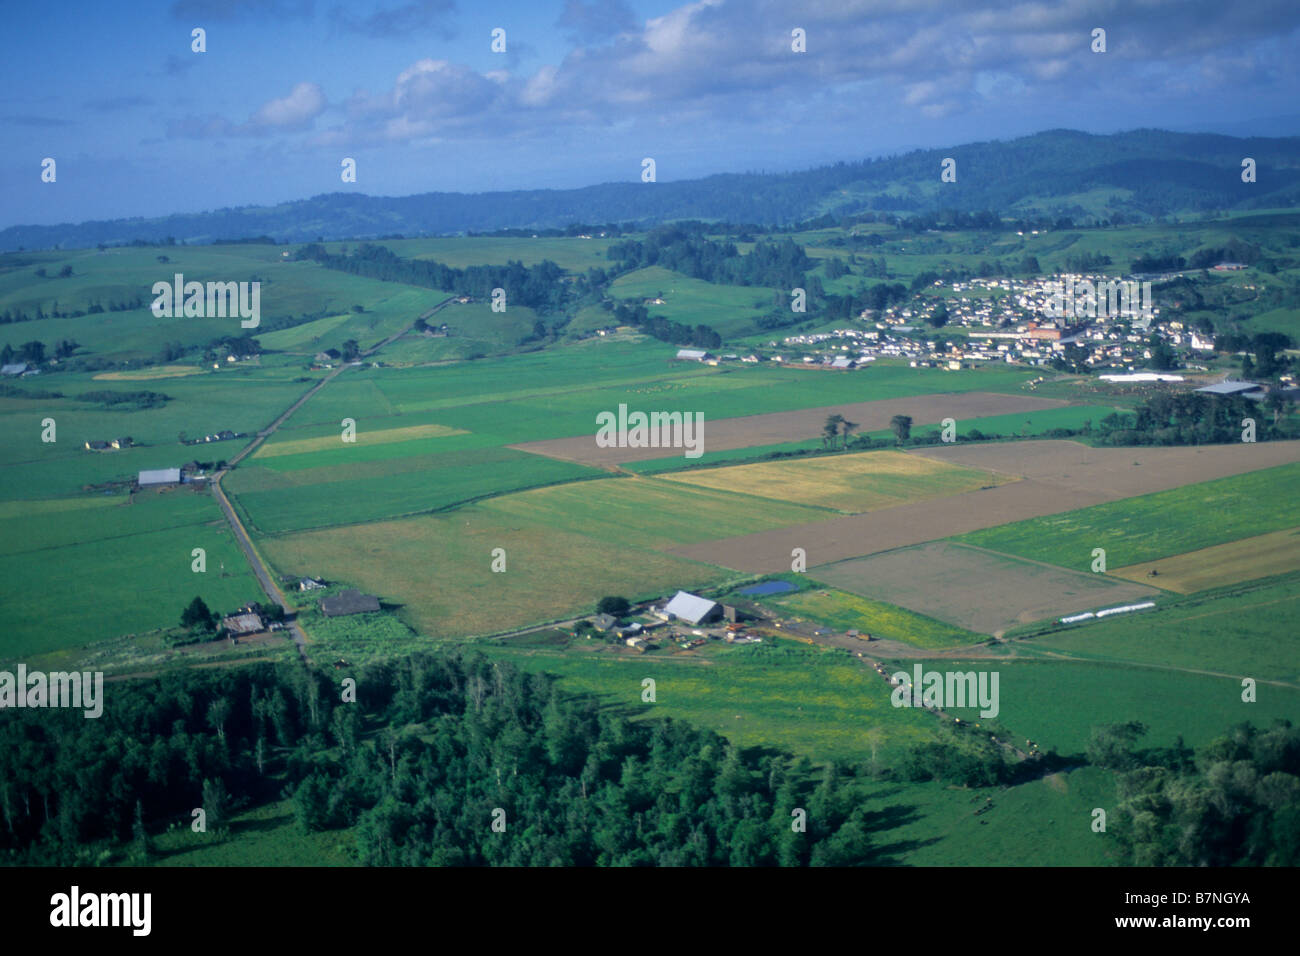 Aerial over the Eel River Valley near Ferndale Humboldt County CALIFORNIA - Stock Image